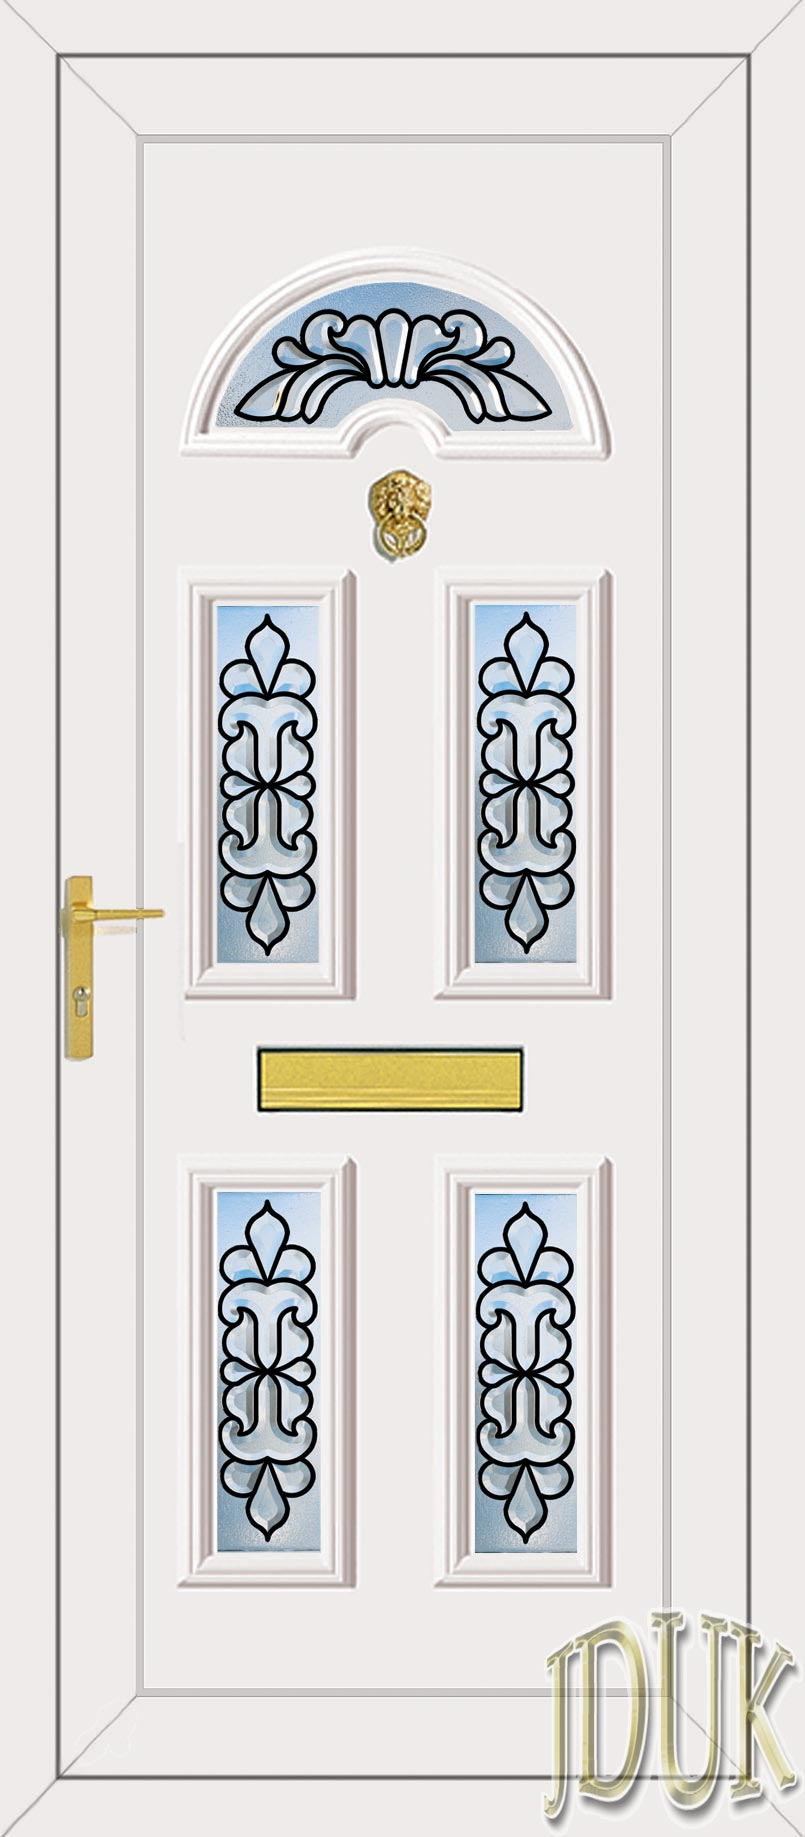 Standard specification for Coloured upvc doors